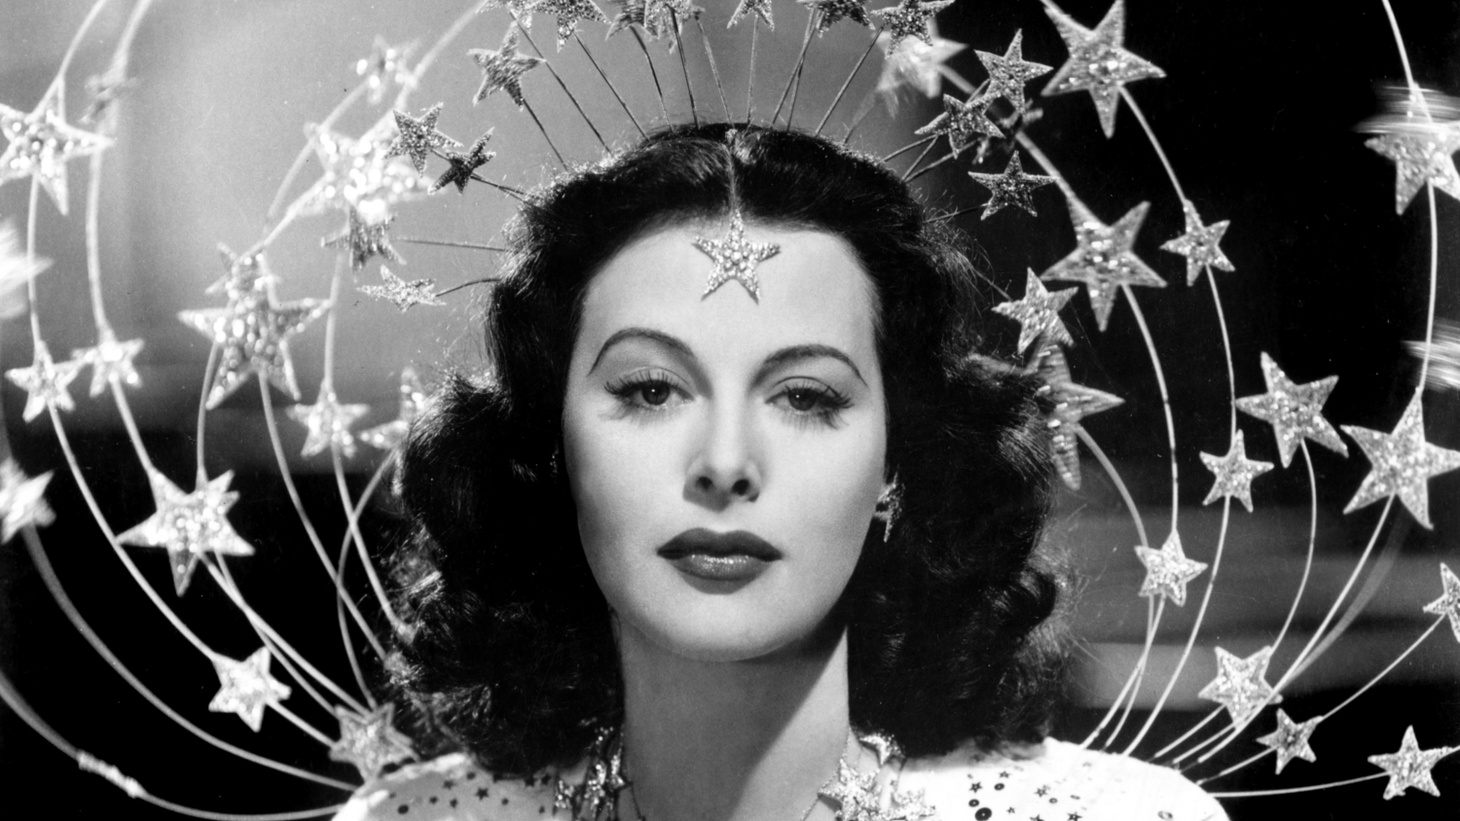 The documentary 'Bombshell' explores the life and legacy of Hedy Lamarr, a star from Hollywood's golden age and an inventor whose ideas are still in use in wireless technology.